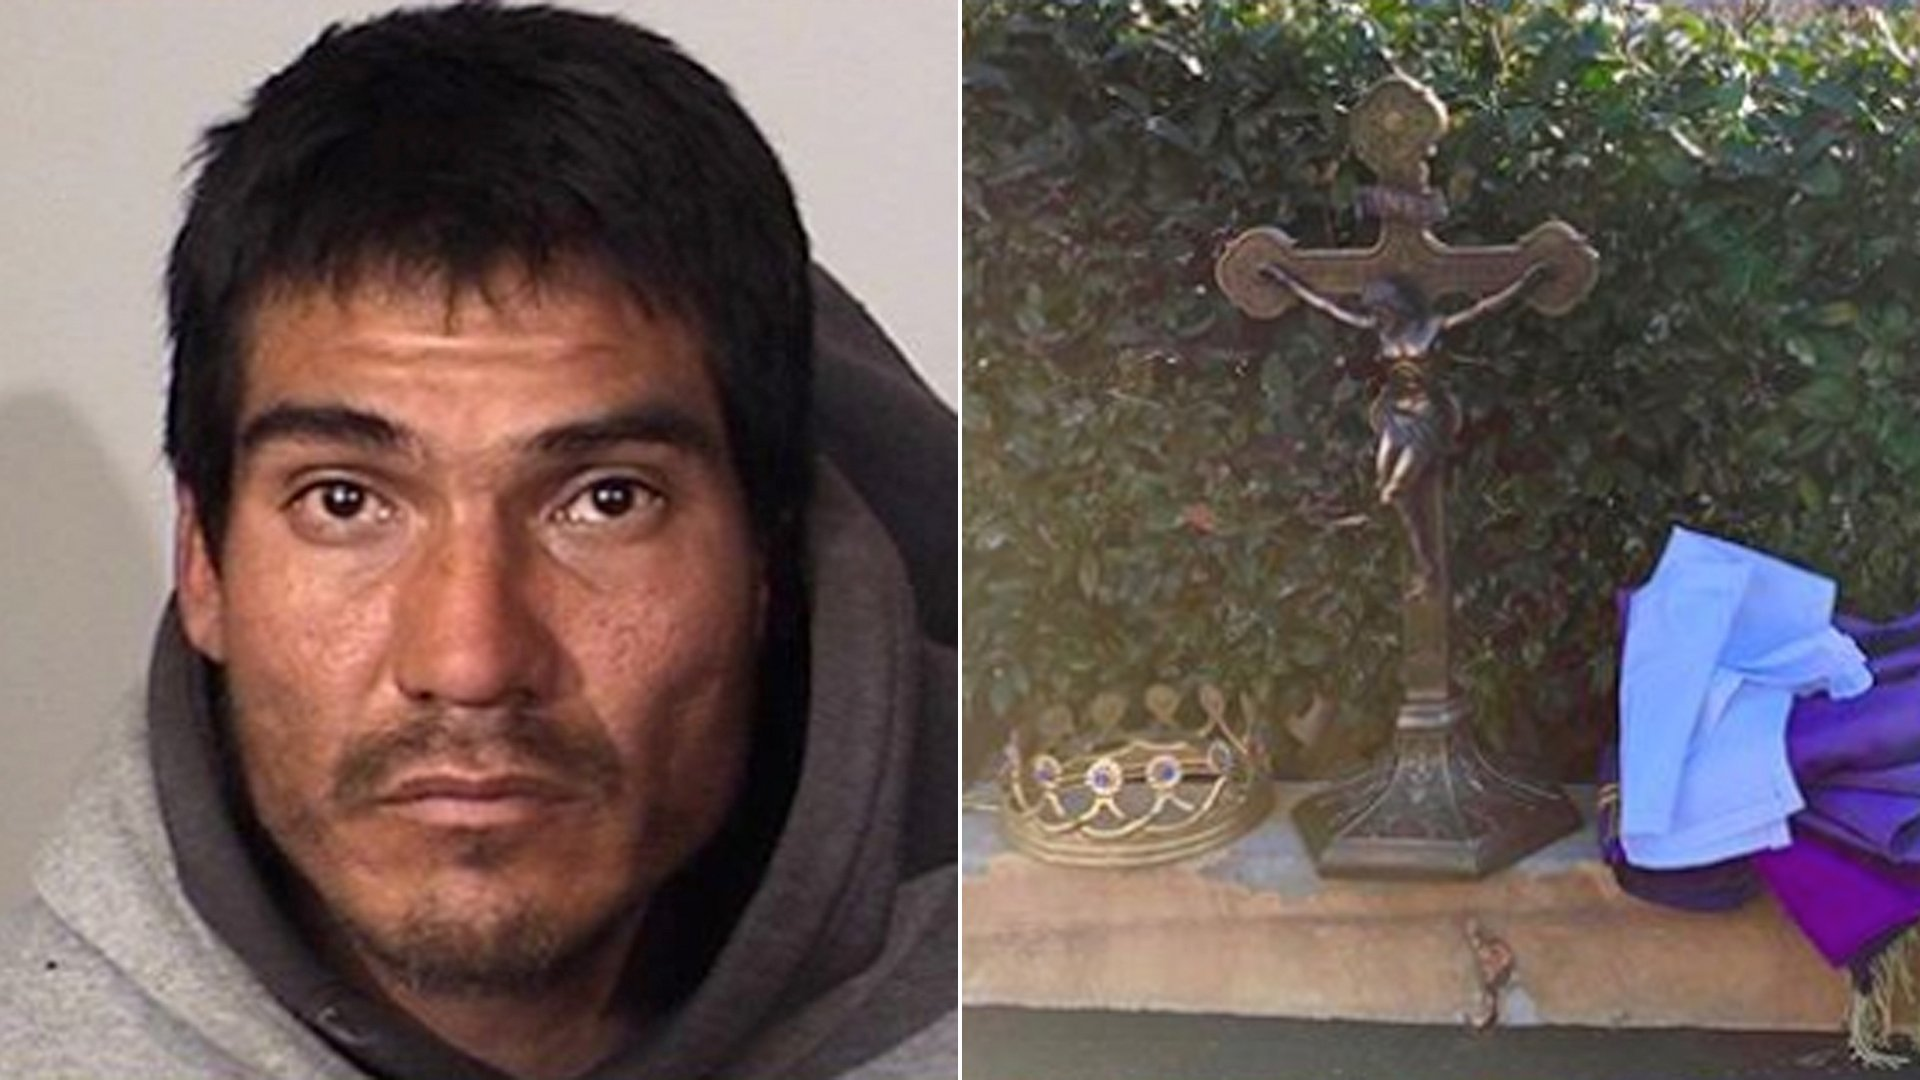 Police arrested Octavio Delgadillo, 36, of Oxnard on Feb. 15, 2020, and recovered religious antiques believed to have been stolen from a local church about a week prior. (Credit: Oxnard Police Department)